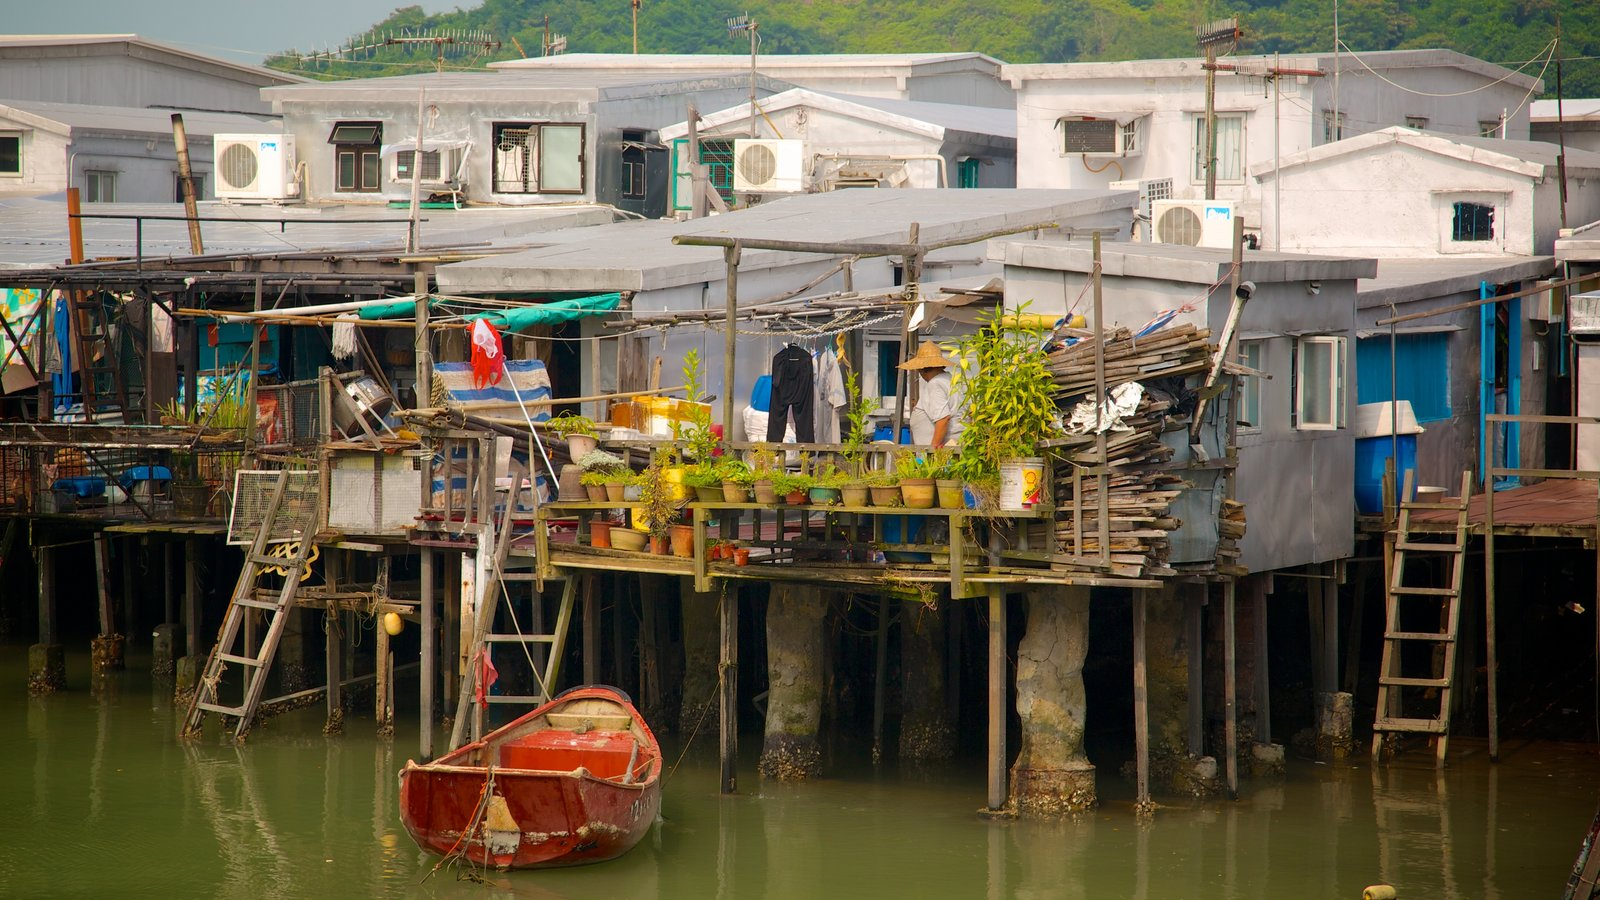 Tai O Fishing Village showing a house, boating and a small town or village